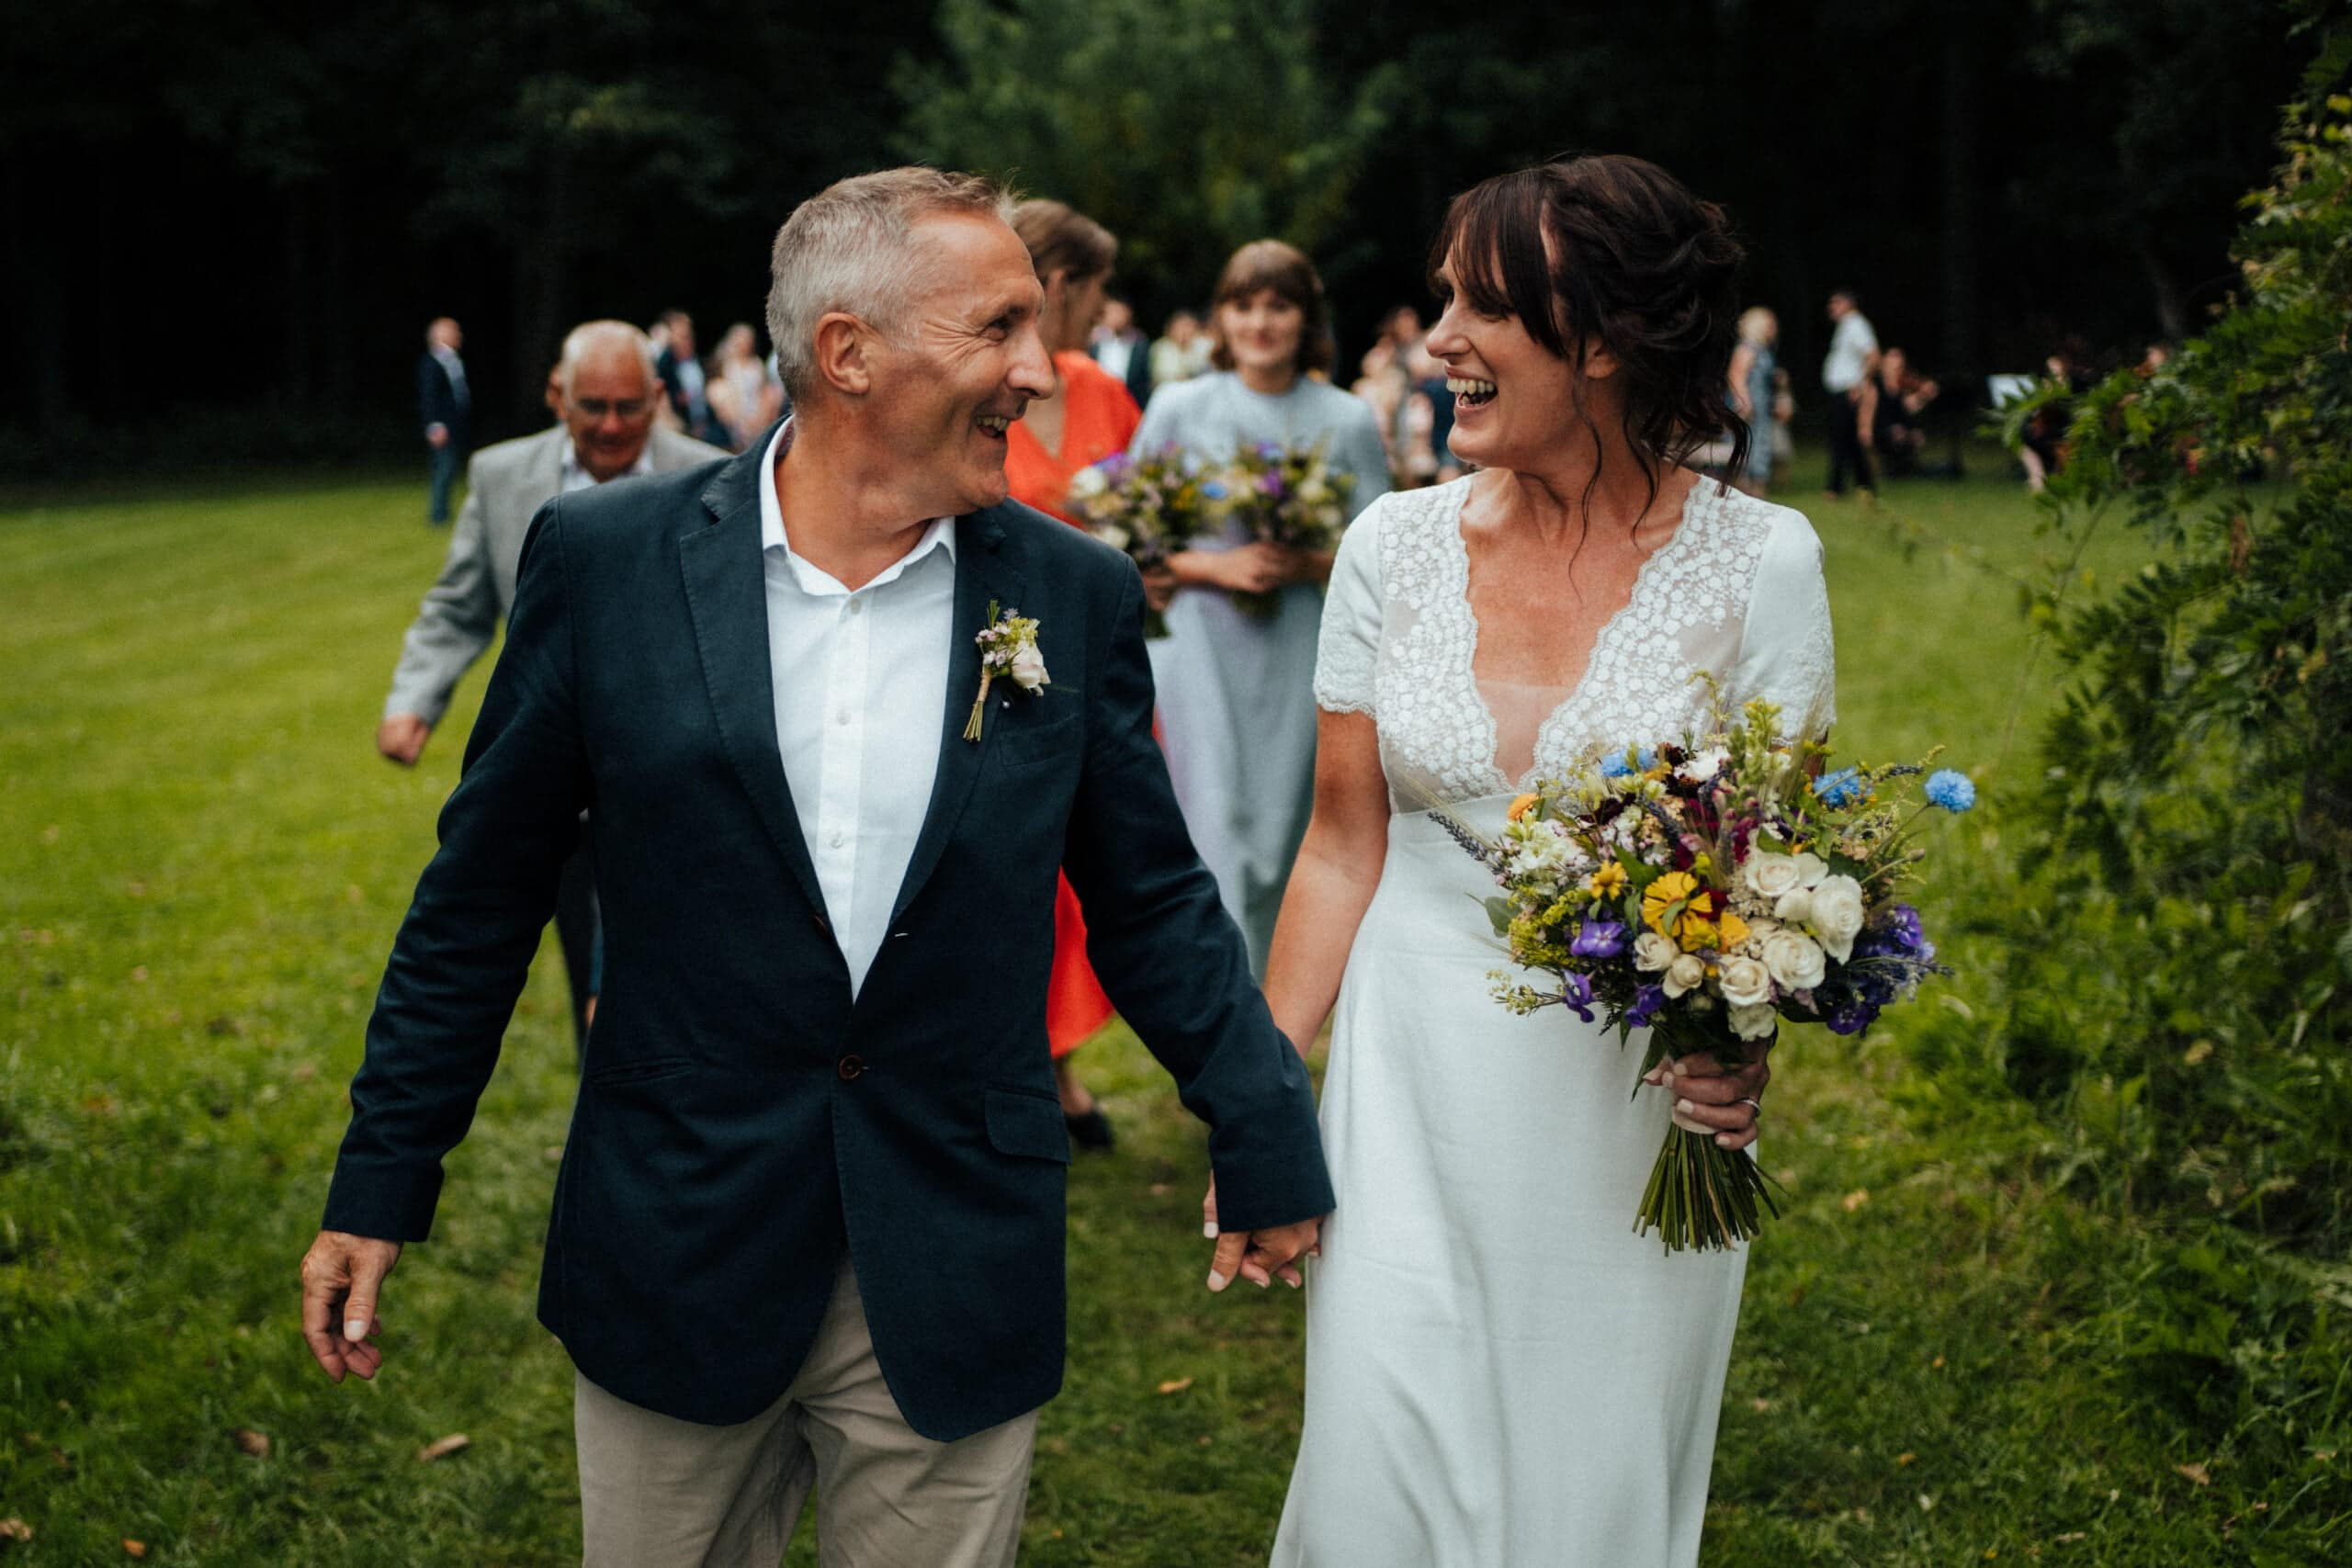 Chaucer barn wedding ceremony with flowers